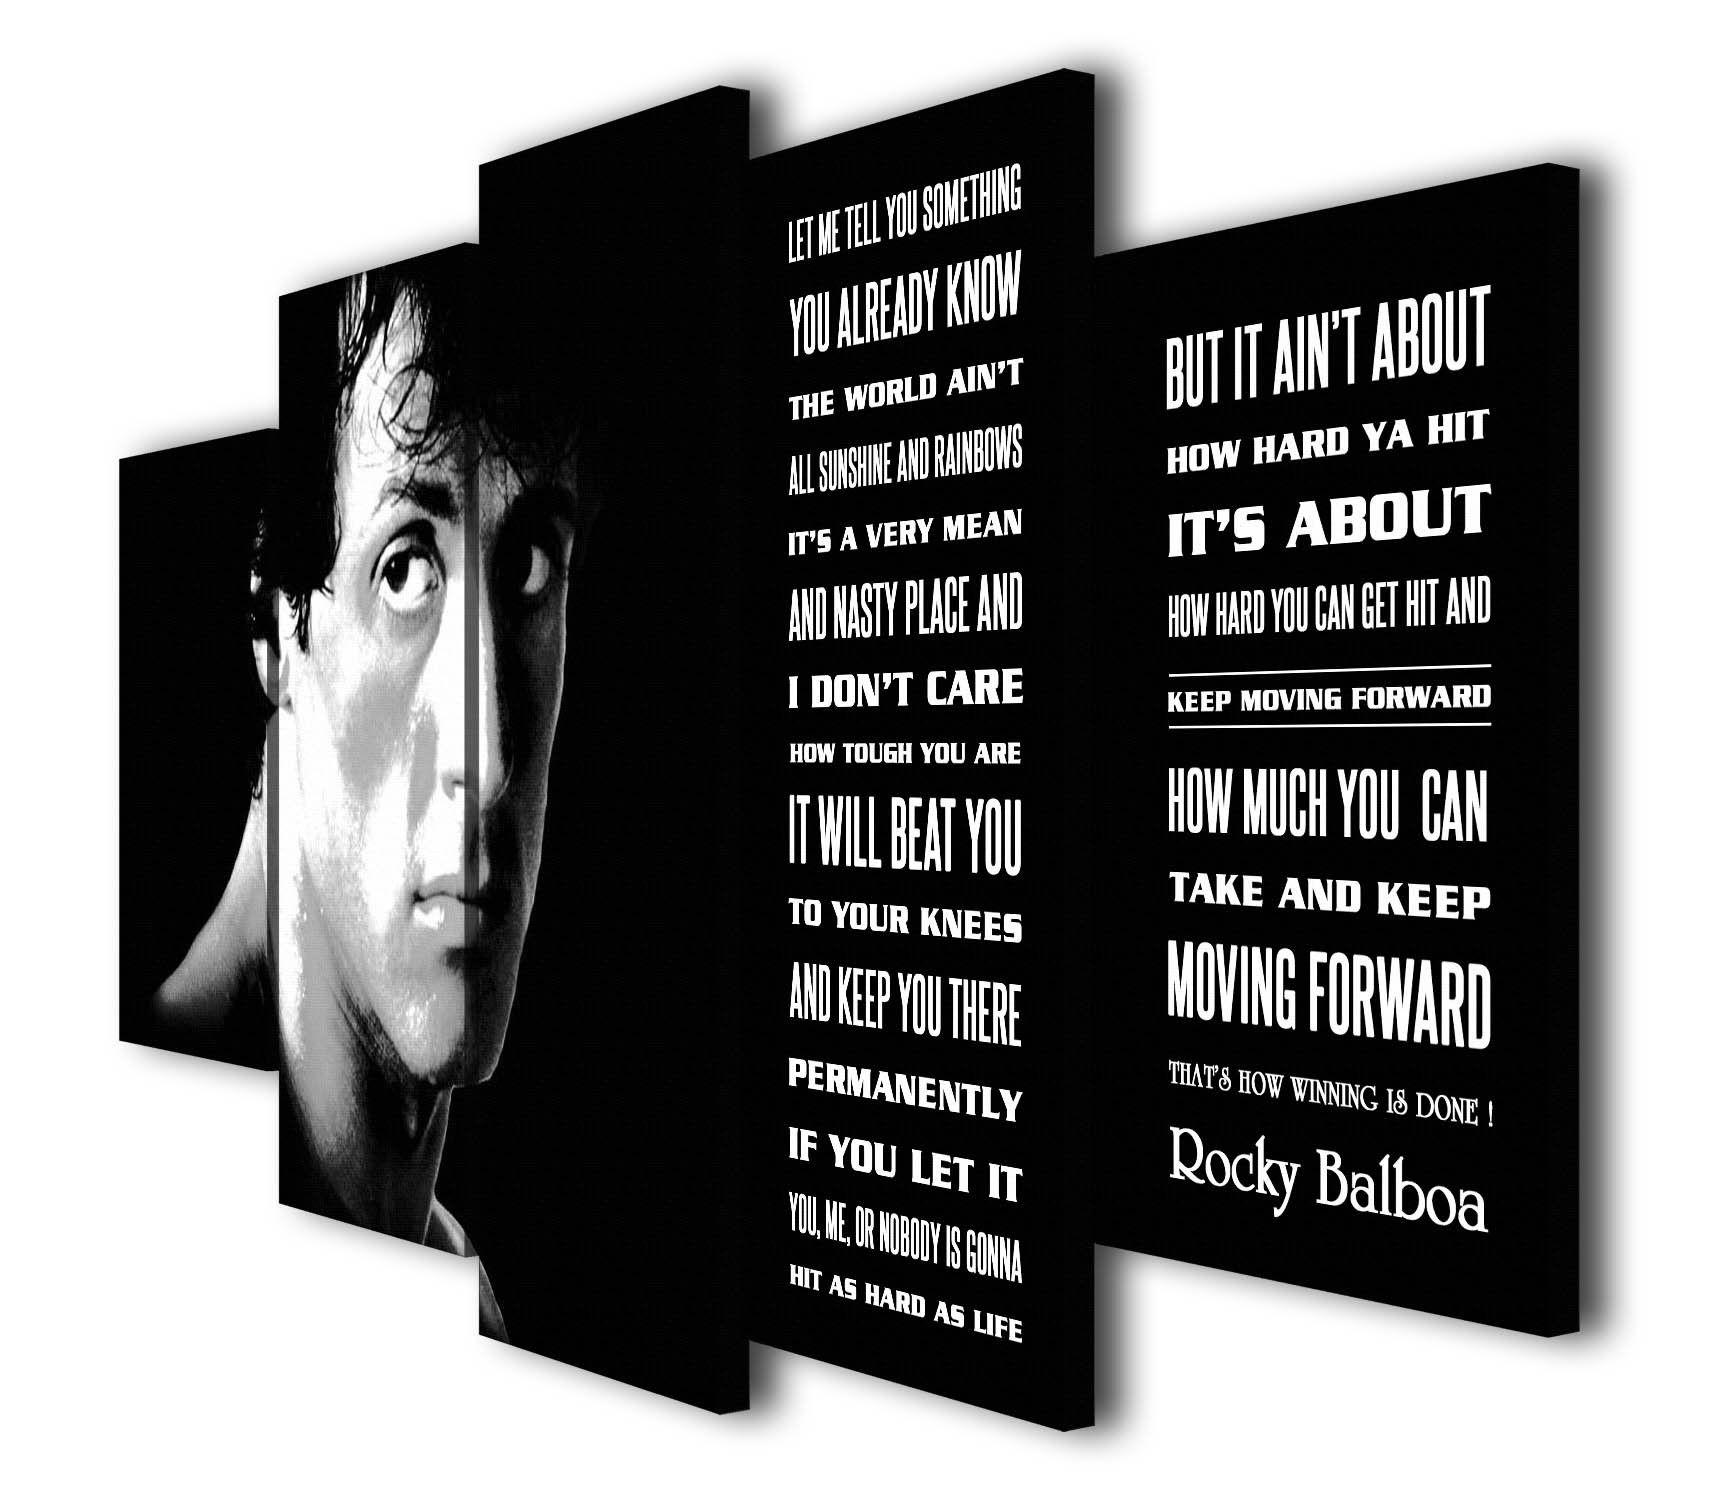 ROCKY BALBOA HIS QUOTE  BLACK AND WHITE  PRINT ON FRAMED CANVAS WALL ART DECOR